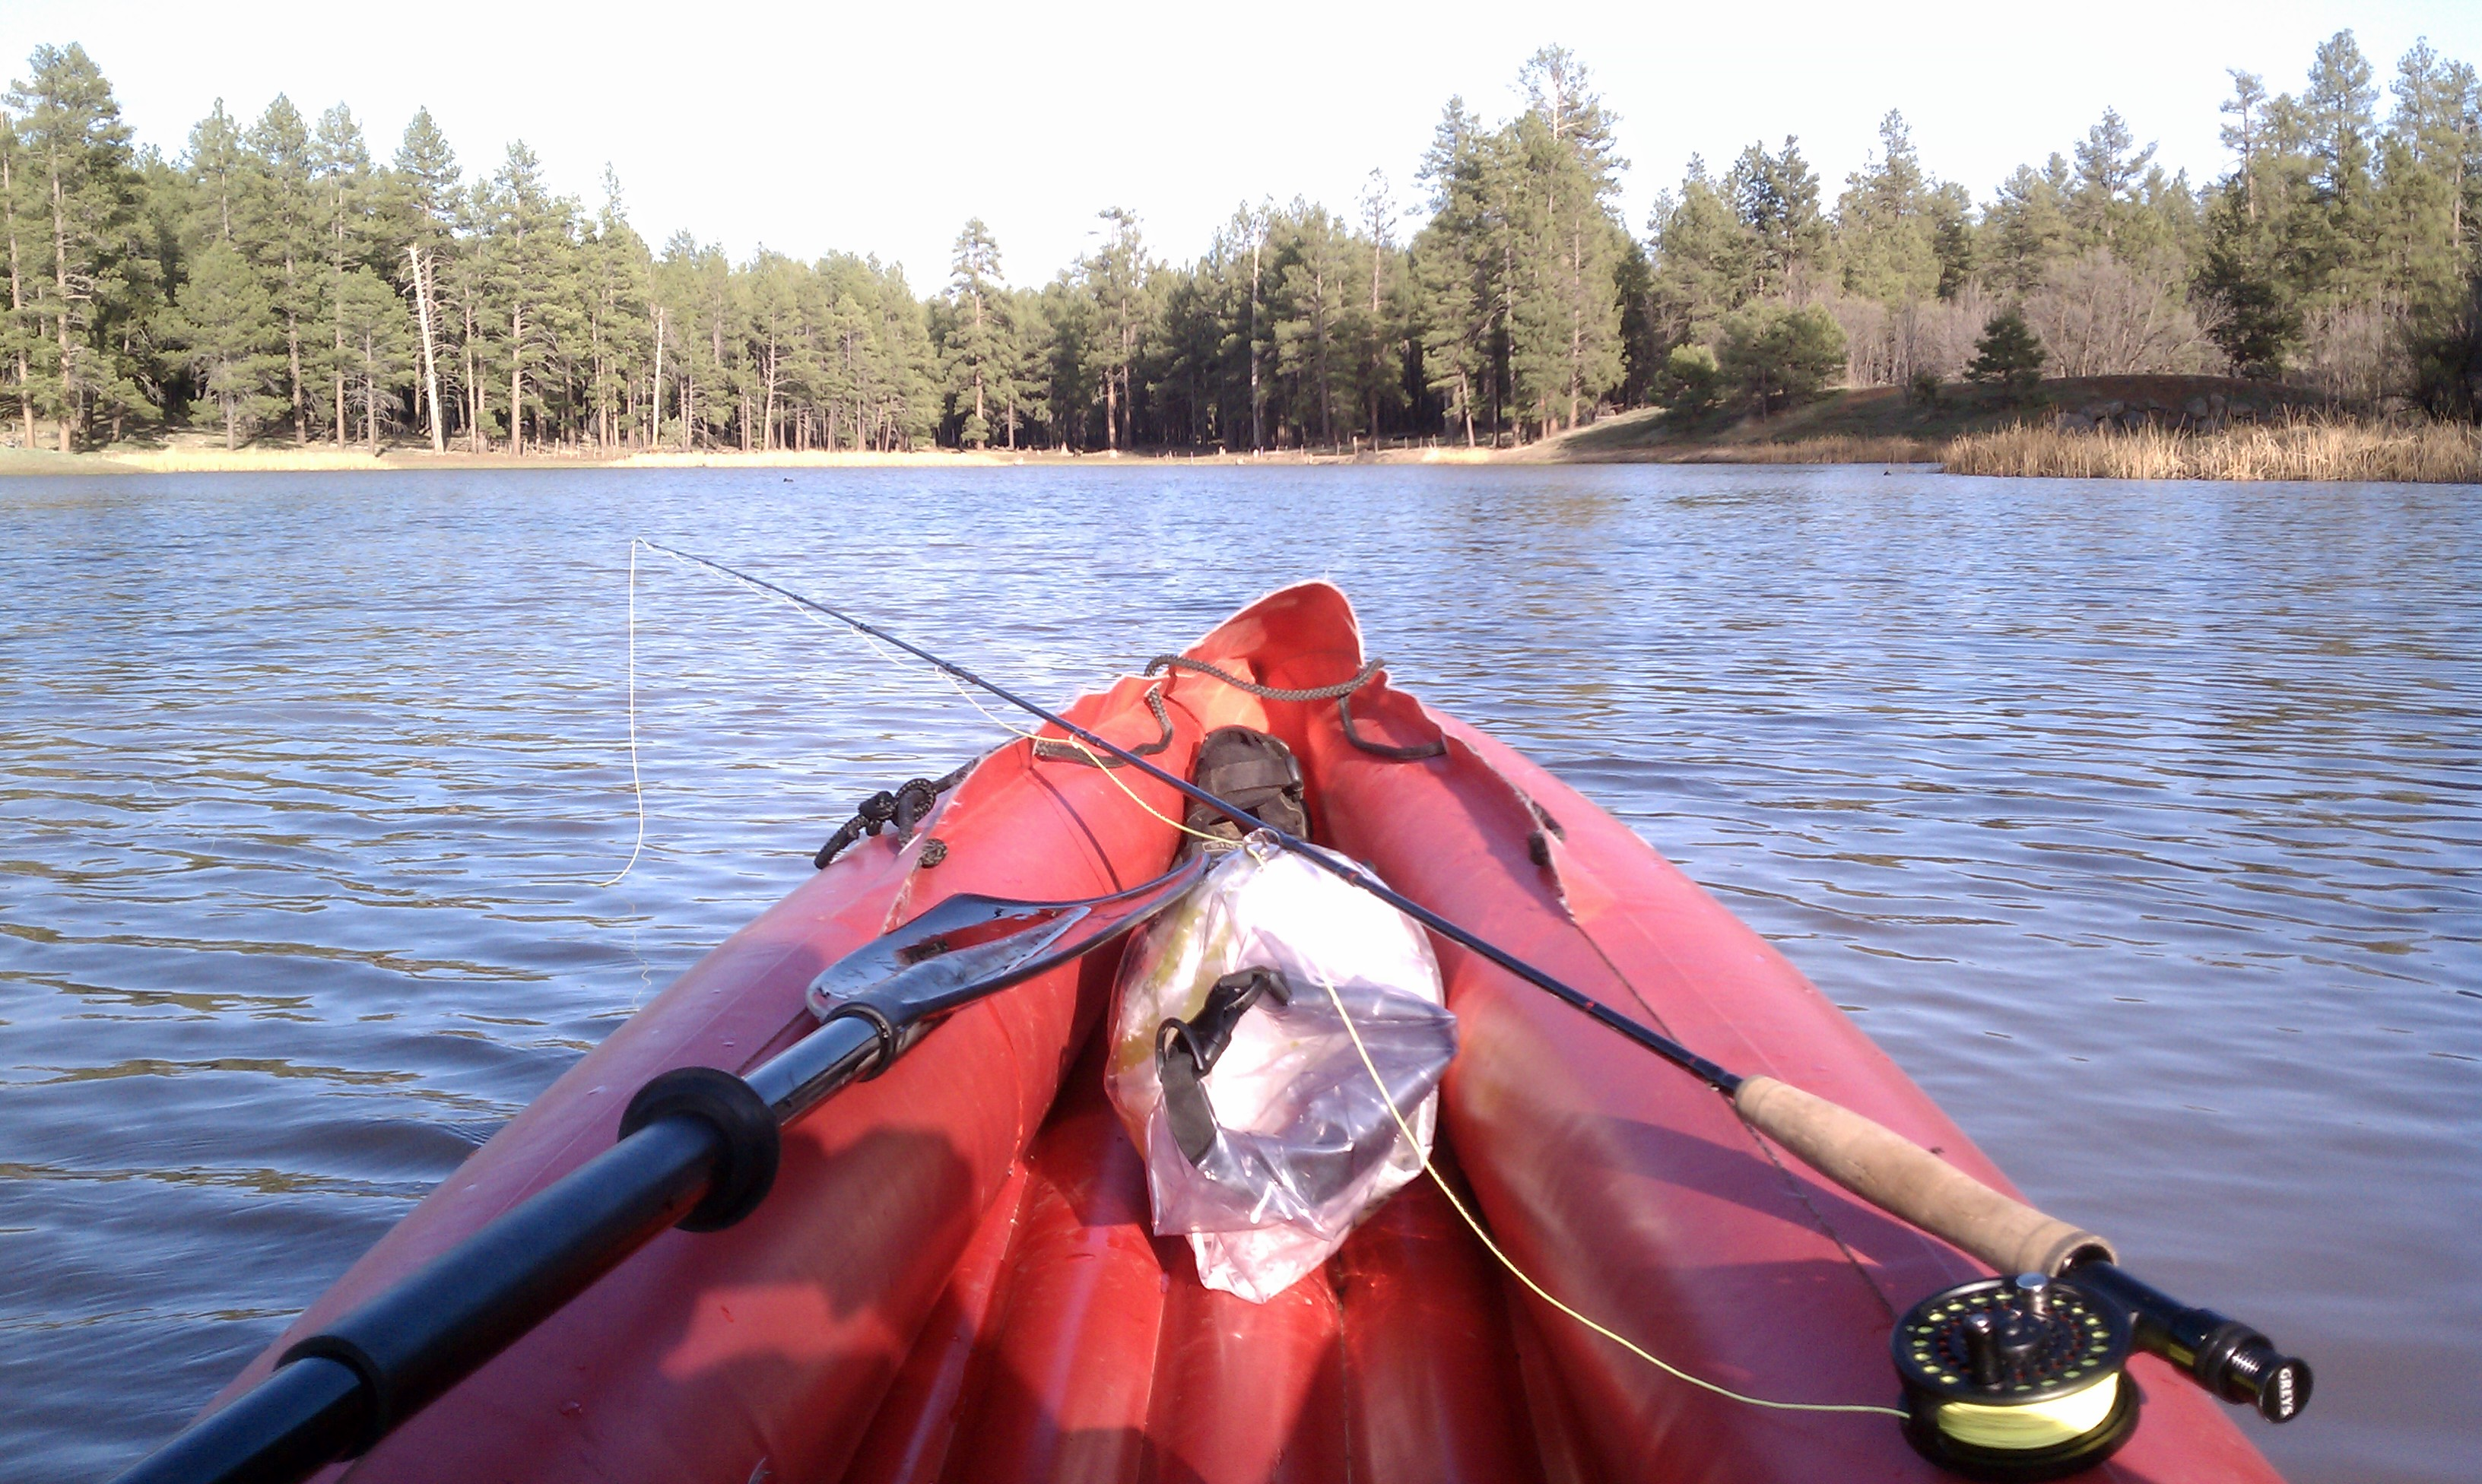 on a borrowed kayak, catching a buzz